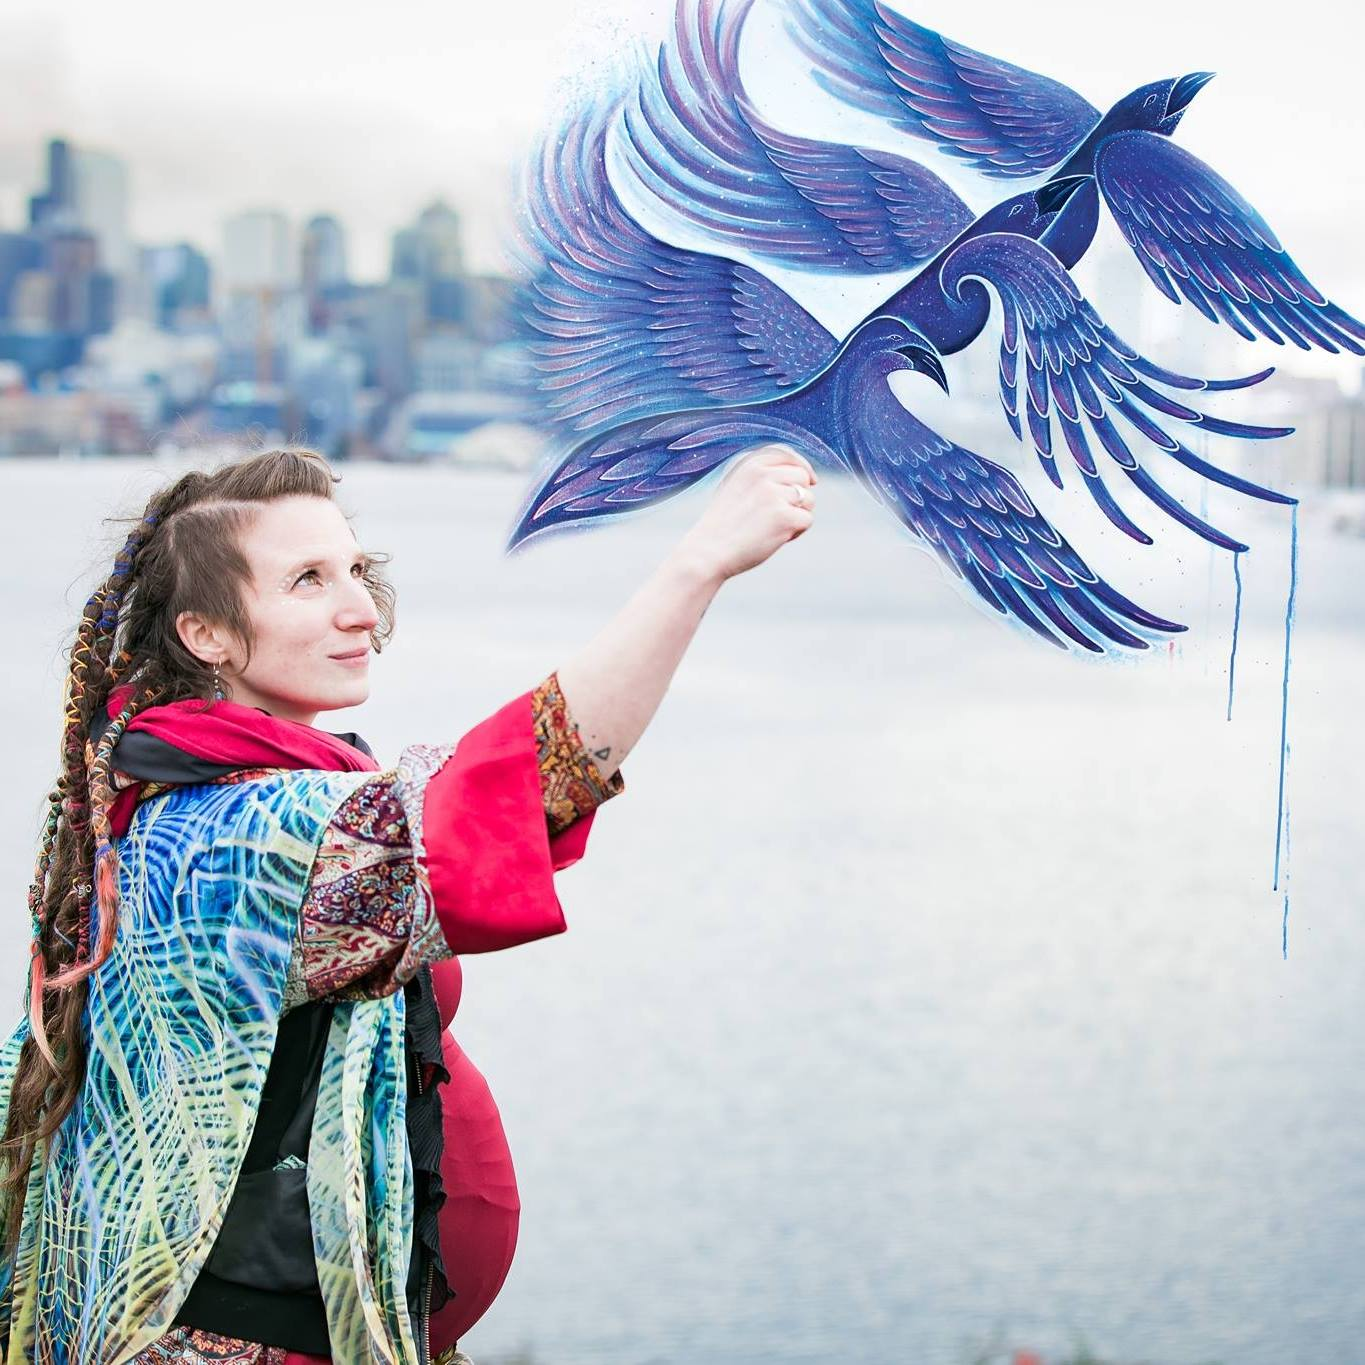 NATALIE DOUD - Natalie is an artist, aerialist, educator and mother with a passion for teaching and community building. She believes in the power of art to uplift and transform lives. Natalie's artistic pursuits focus on the concept of flow, nature, identity and human interconnection. Her work explores themes of abstract energy, electromagnetism, anatomy and inner-space.